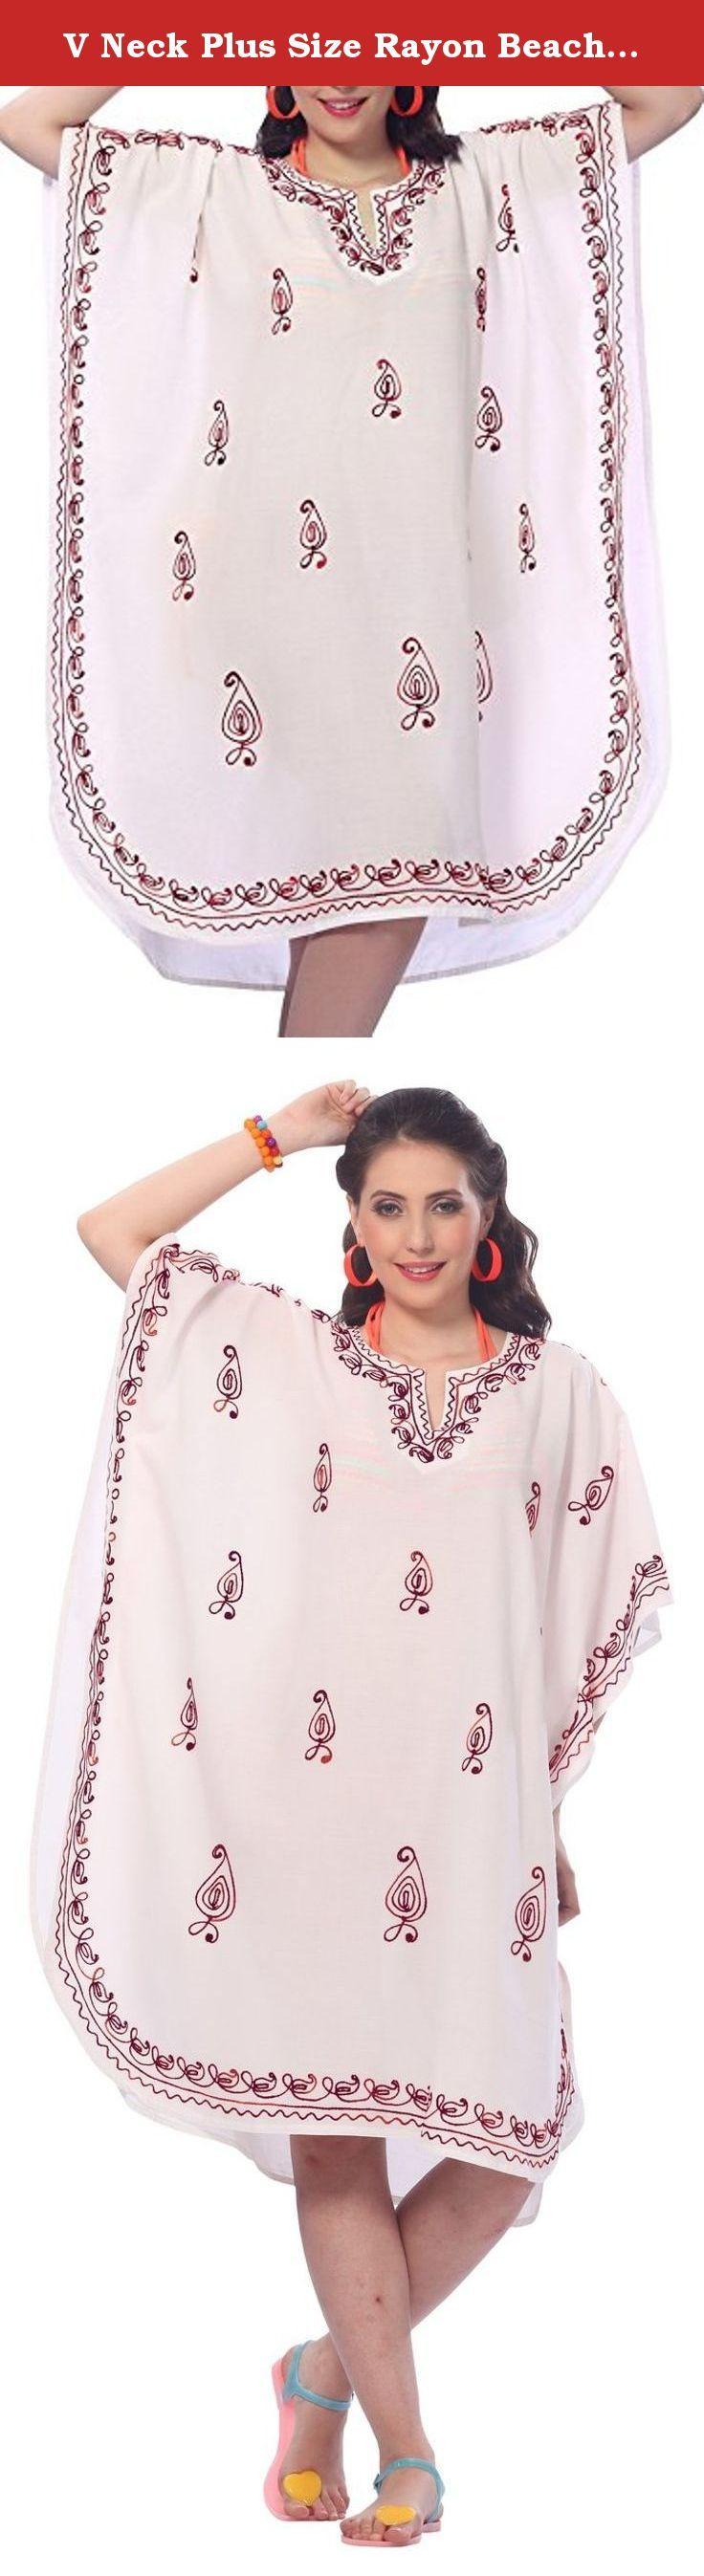 "V Neck Plus Size Rayon Beach Tunic Embroidered Women Short Lounge Caftan Red Valentines Day Gifts 2017. Description:- ==> Welcome to LA LEELA ==> Enjoy Beach, Breeze and Nature with La Leela's ""VIBRANT BEACH COLLECTION"" and stay calm and classy! . ==> Fabric : DELICATE DESIGNER EMBROIDERED LIGHTWEIGHT SMOOTH RAYON FABRIC US Size : From Regular 14 (L) TO Plus Size 28W (4X) ➤ UK SIZE : FROM REGULAR 14 (M) TO 30(XXXL) ➤ BUST : 56 Inches [ 142 cms ]➤ Length : 43 Inches [ 109 cms ]…"